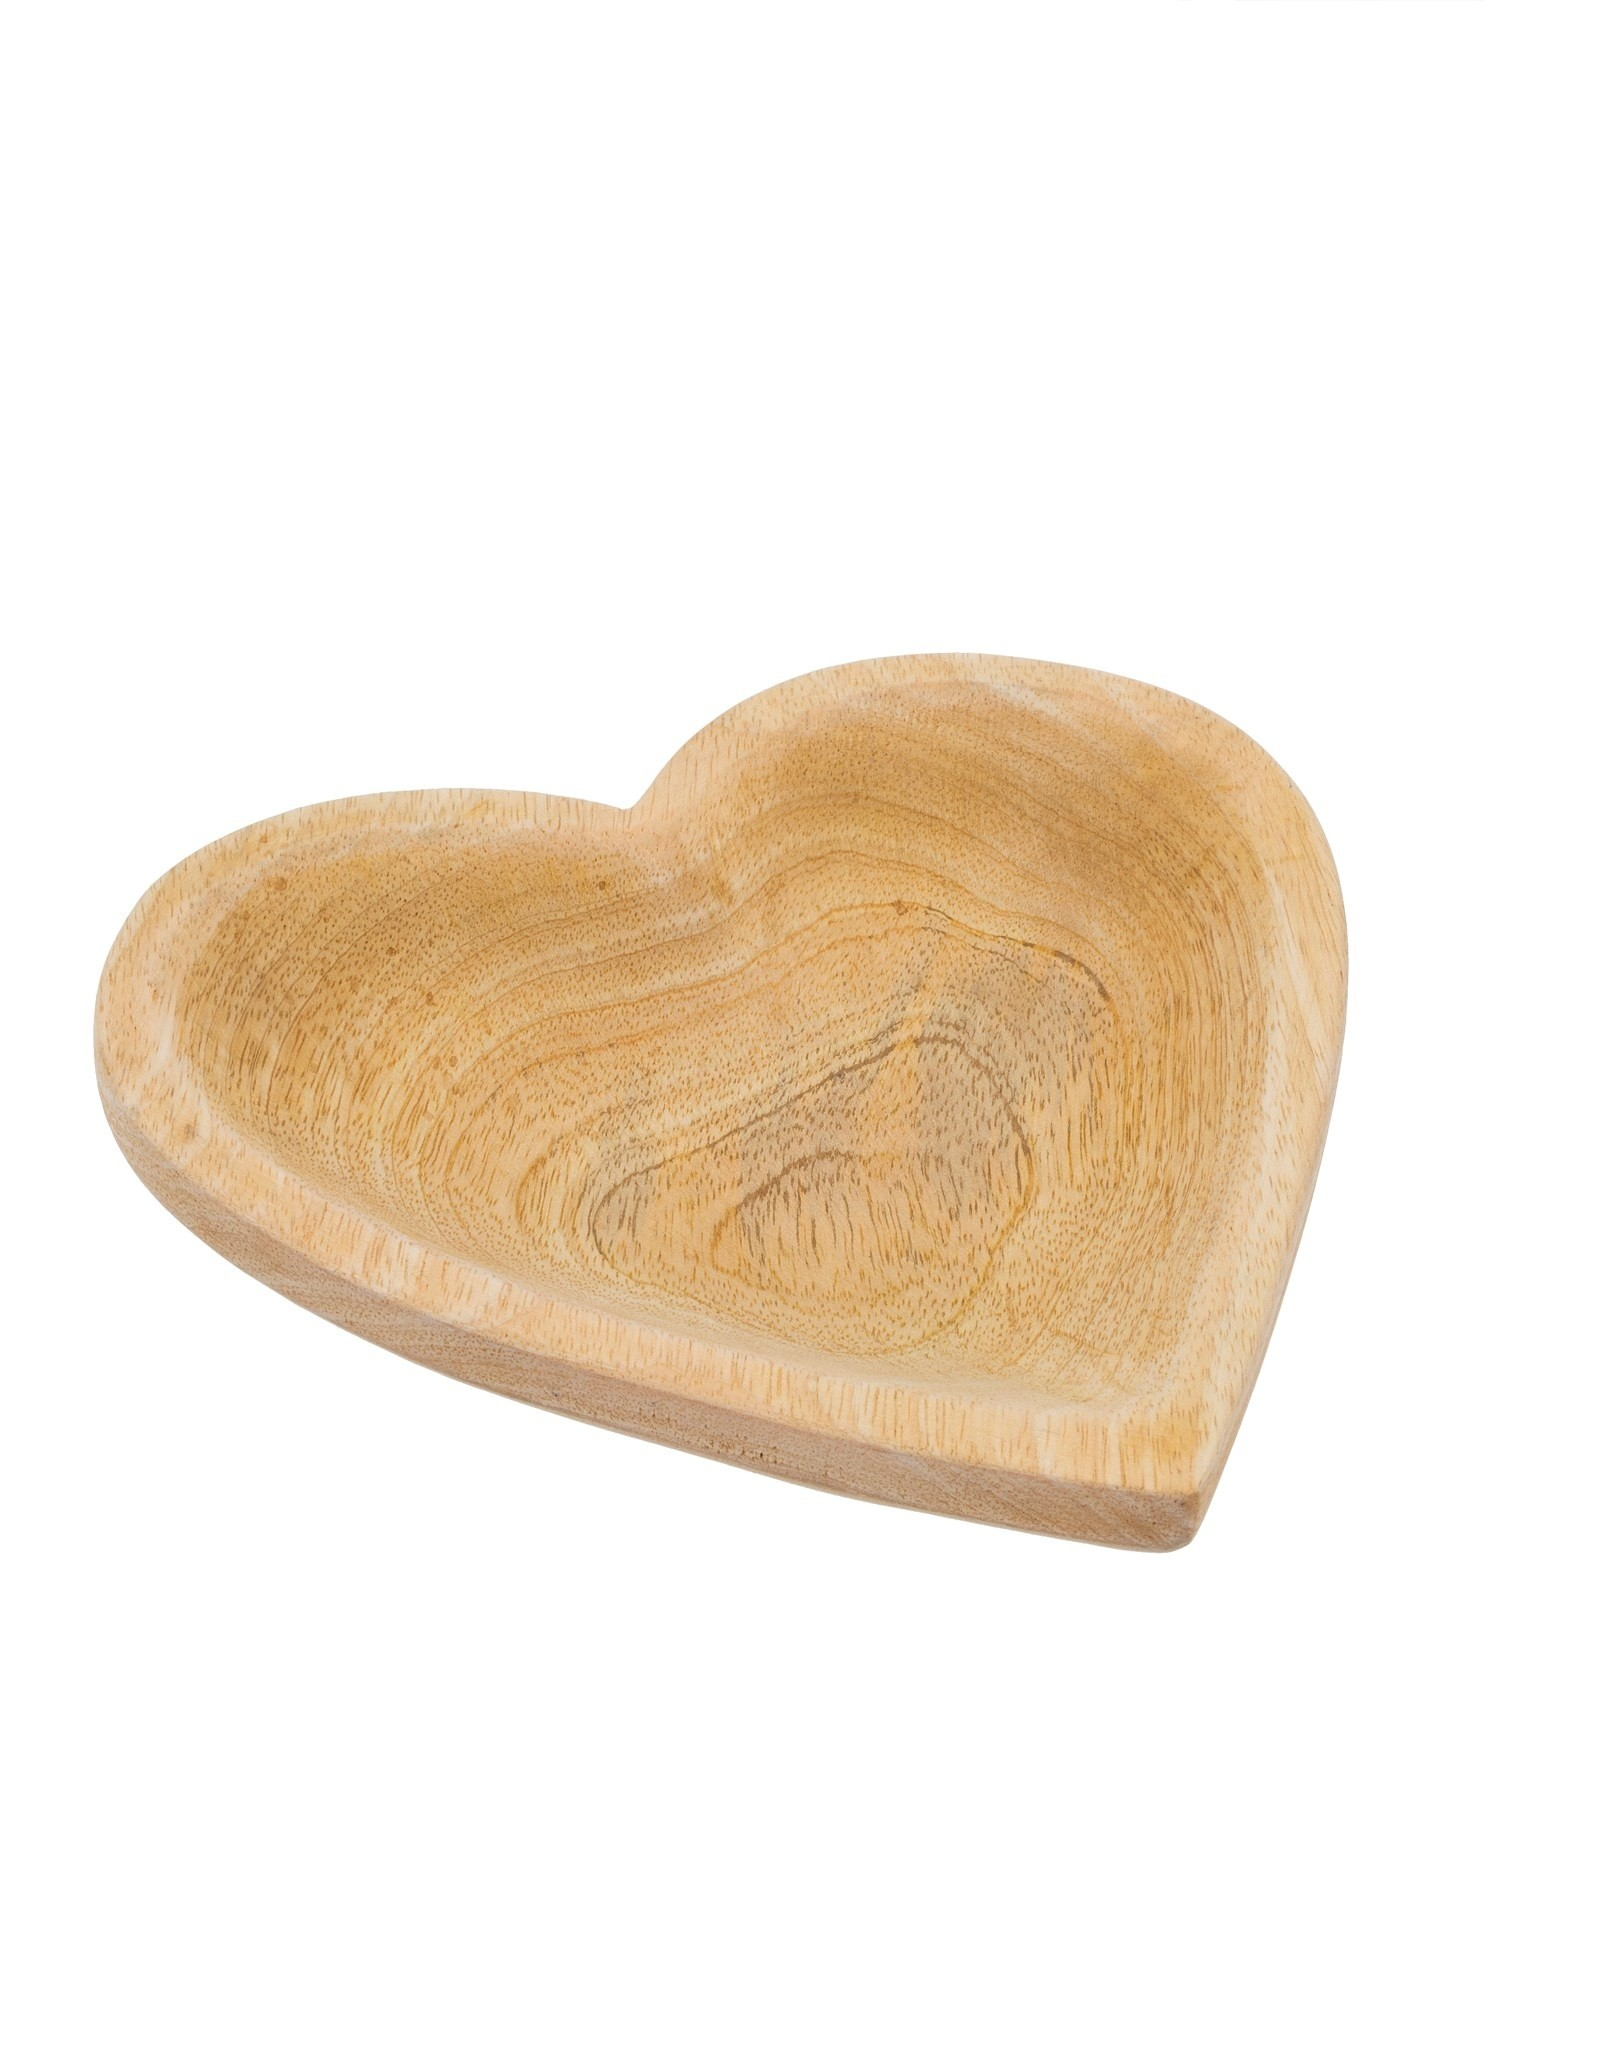 Wild Heart Plate small